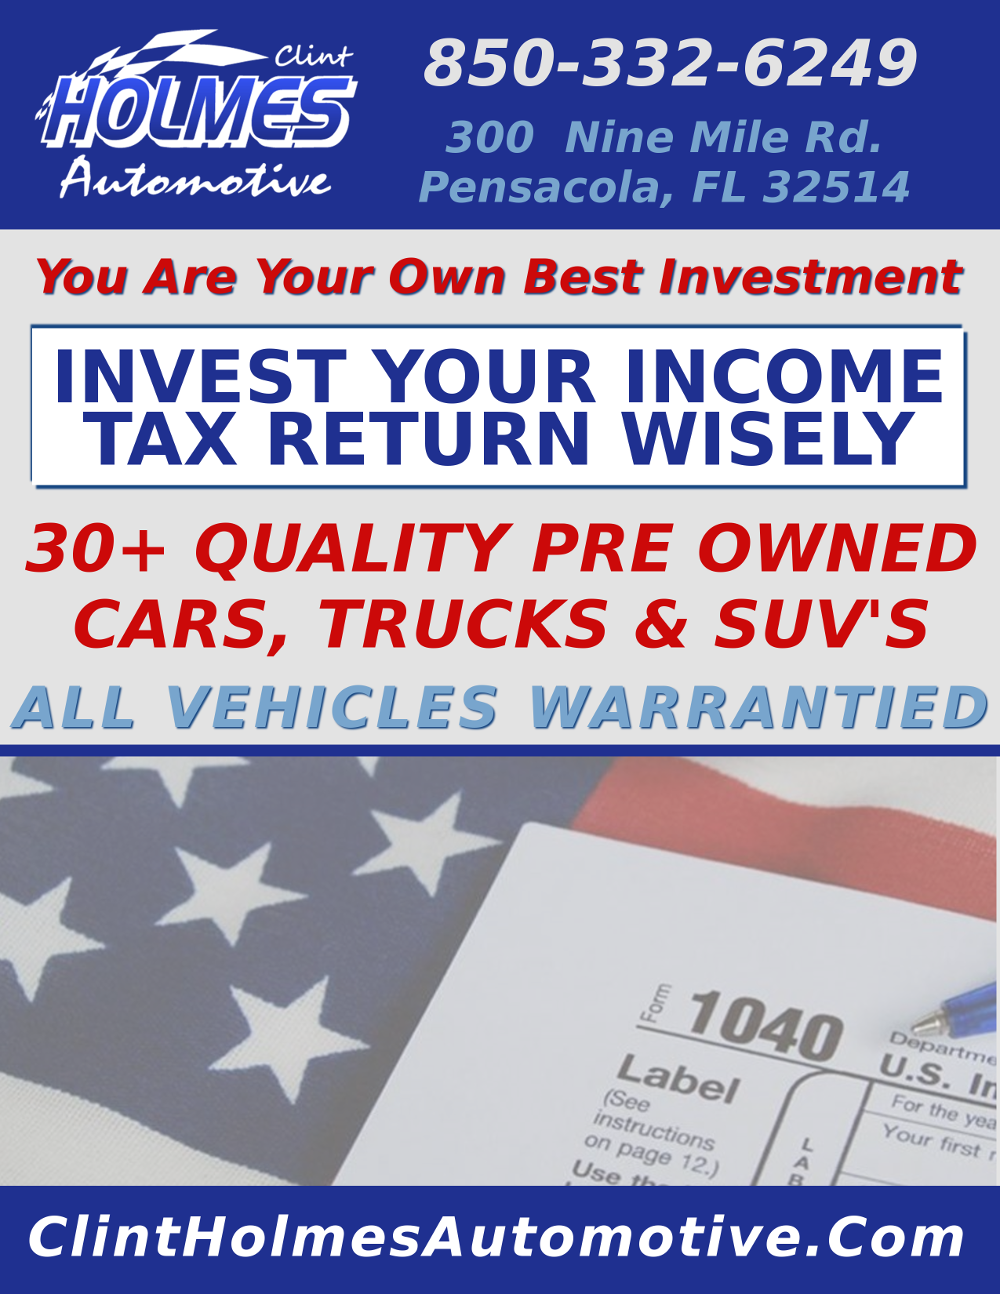 Purchase a car with your income tax returns at Clint Holmes Automotive car dealership in Pensacola